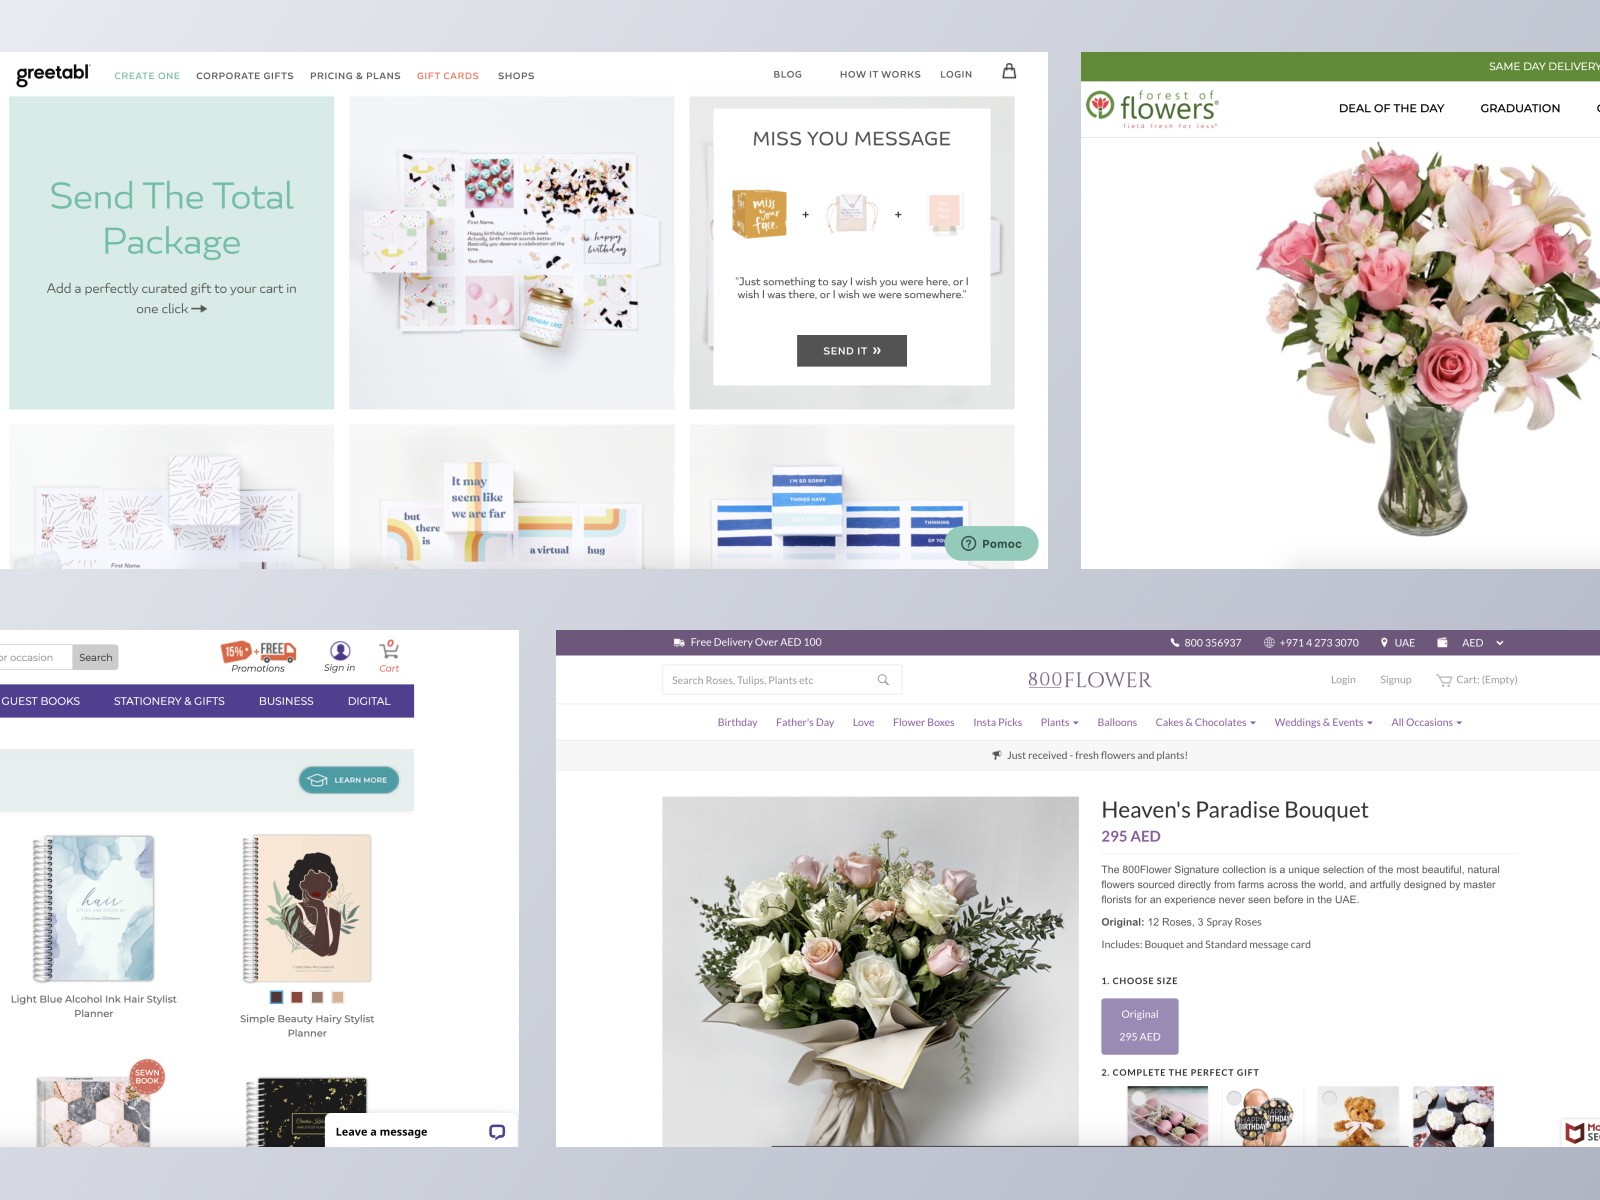 Gifts and Flowers ecommerce websites using Spree Commerce